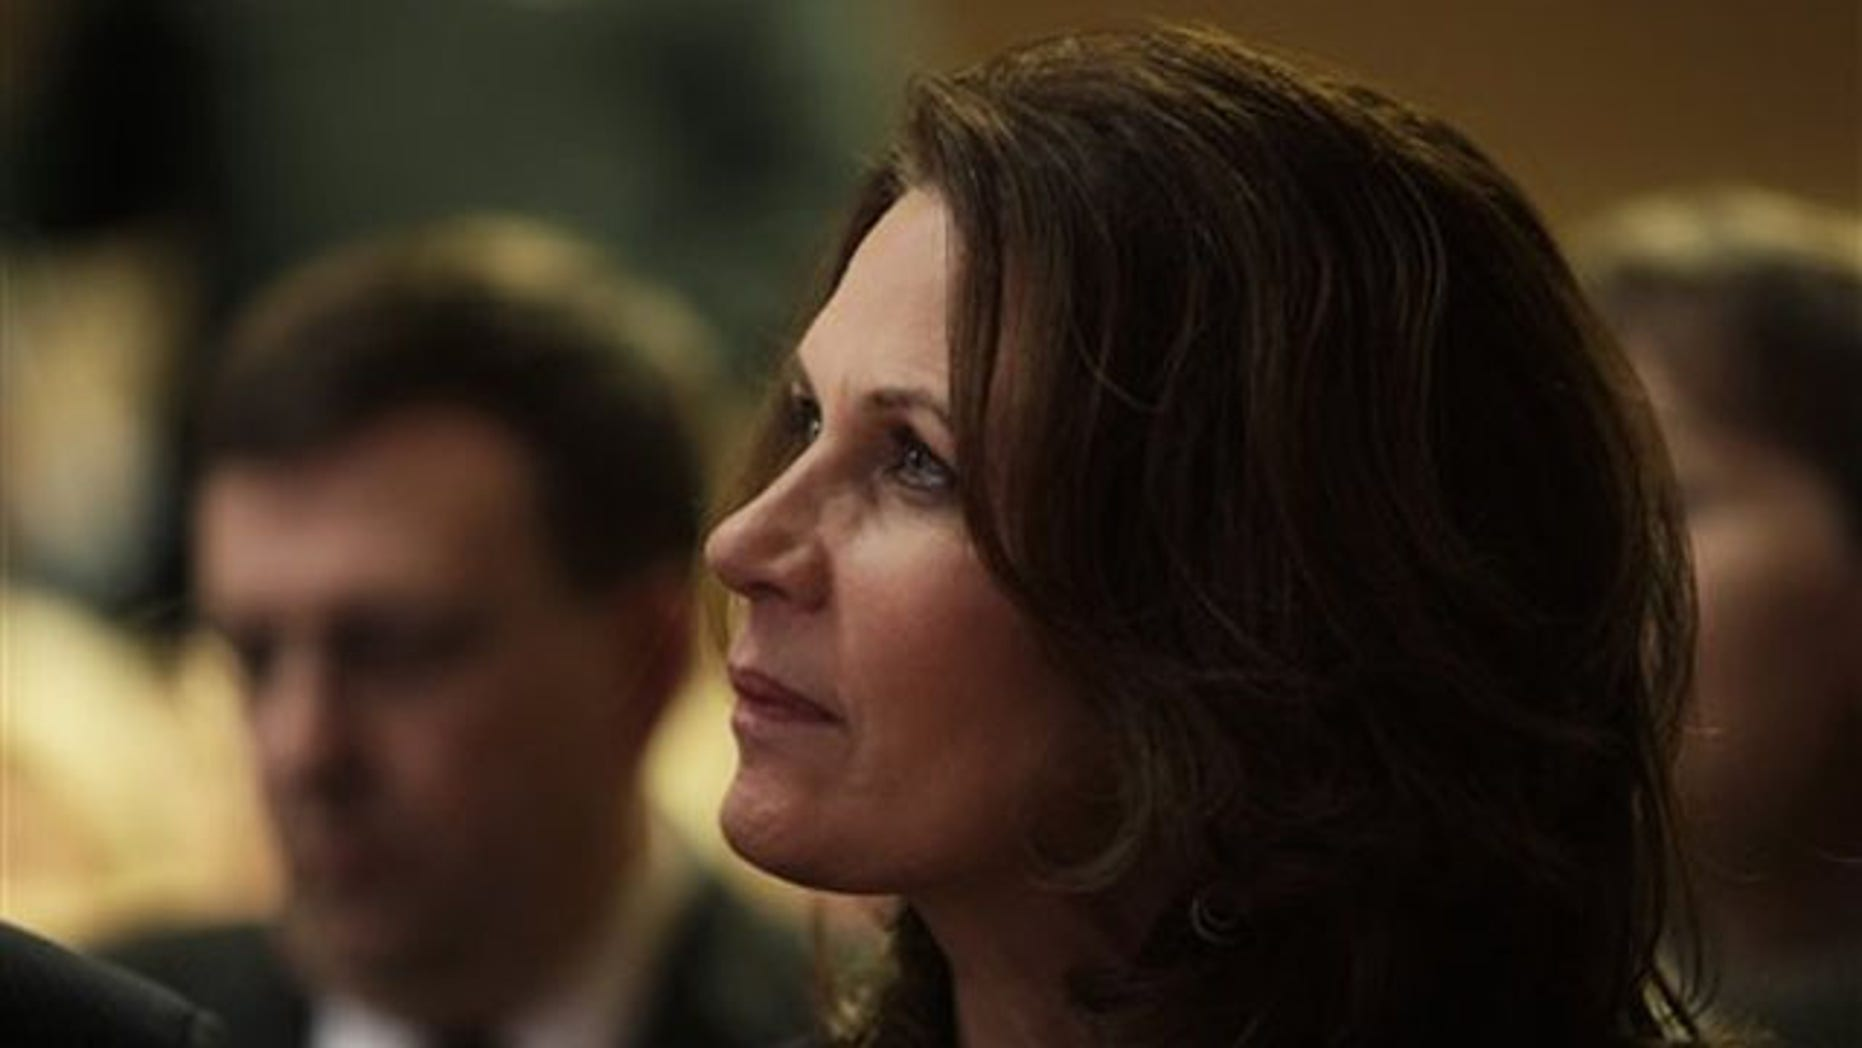 Rep. Michele Bachmann waits to speak at a reception by the Iowans for Tax Relief Jan. 21 in Des Moines.